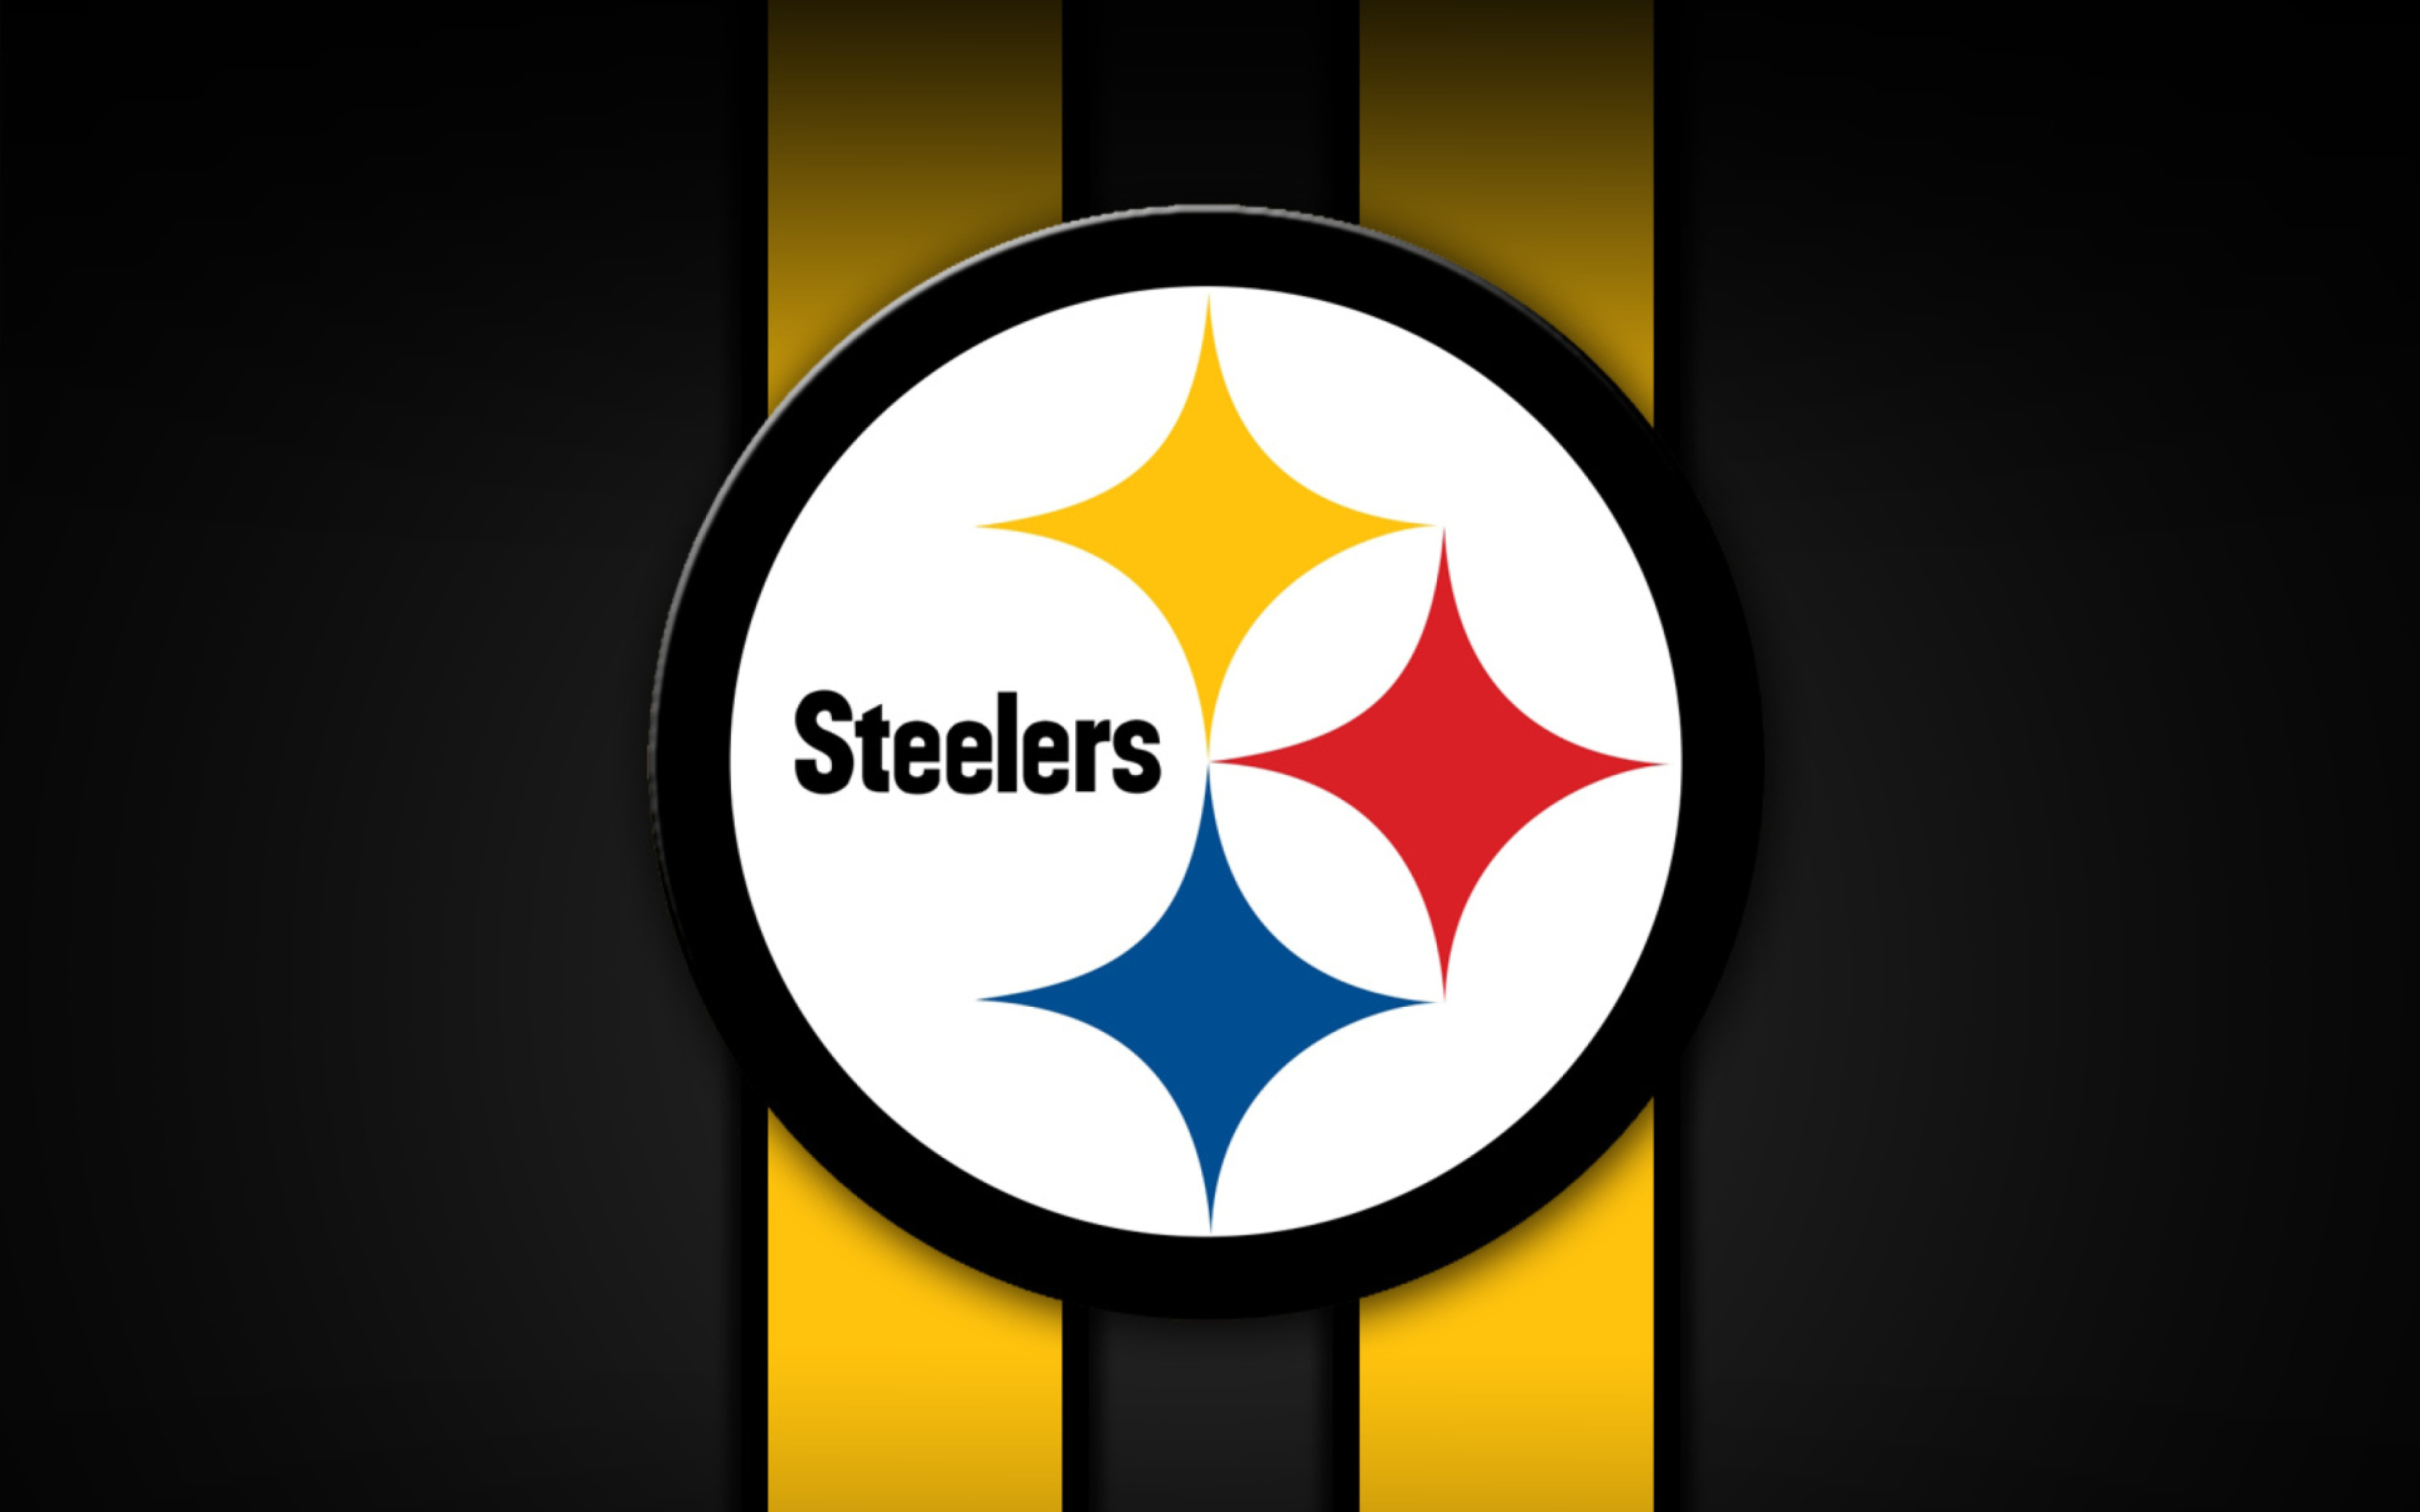 Pittsburgh and Pittsburgh steelers game on Pinterest